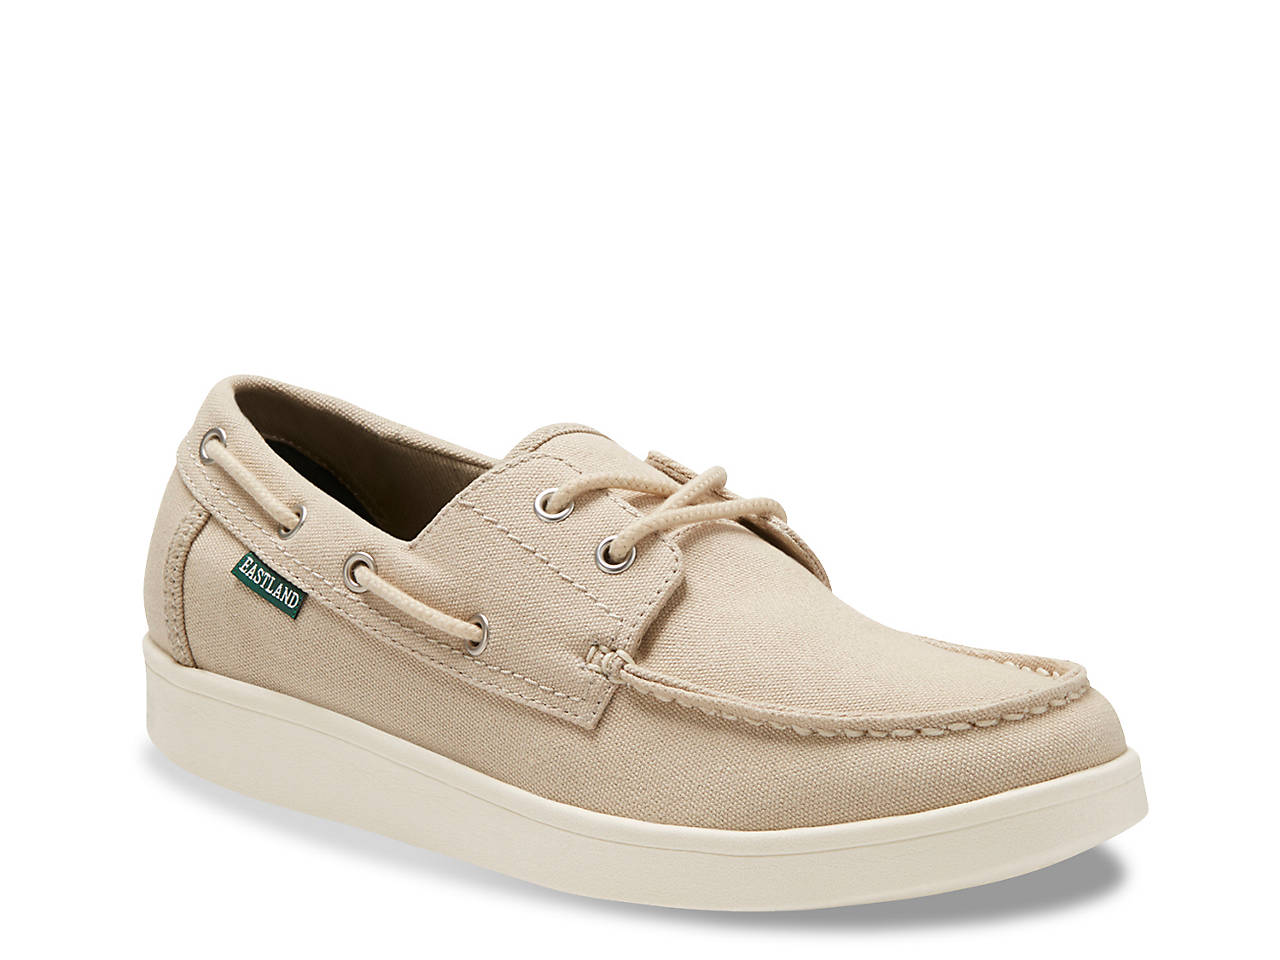 Eastland Popham Men's Boat ... Shoes outlet manchester great sale buy cheap 2014 unisex sale really clearance Inexpensive Tgp3TeG0